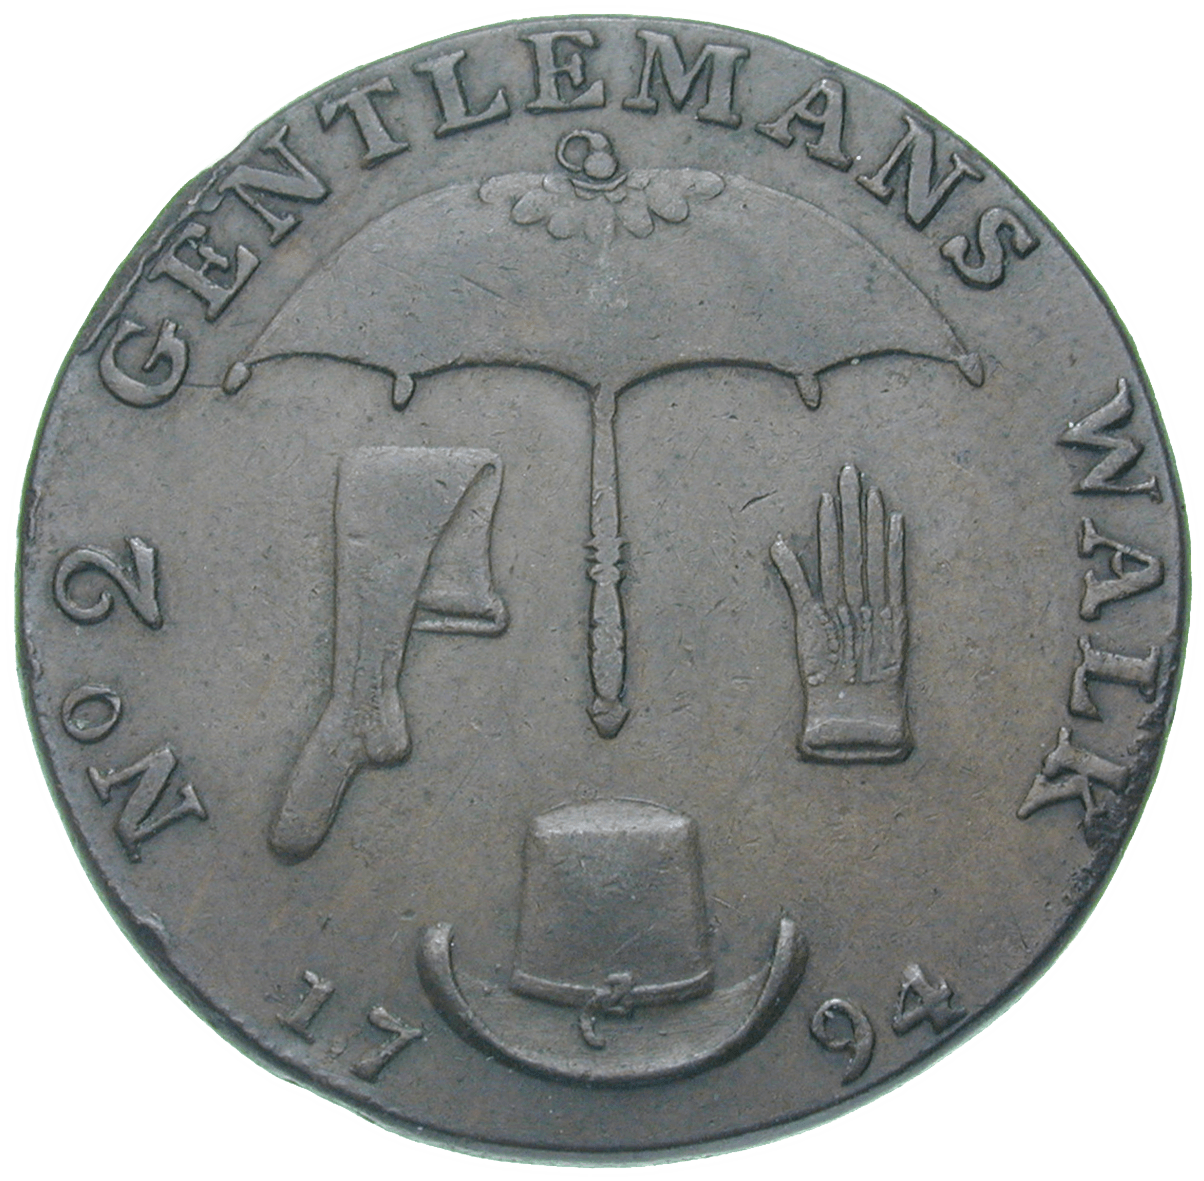 United Kingdom of Great Britain, J. Clarke's Market Place, Token worth 1/2 Penny 1794 (reverse)